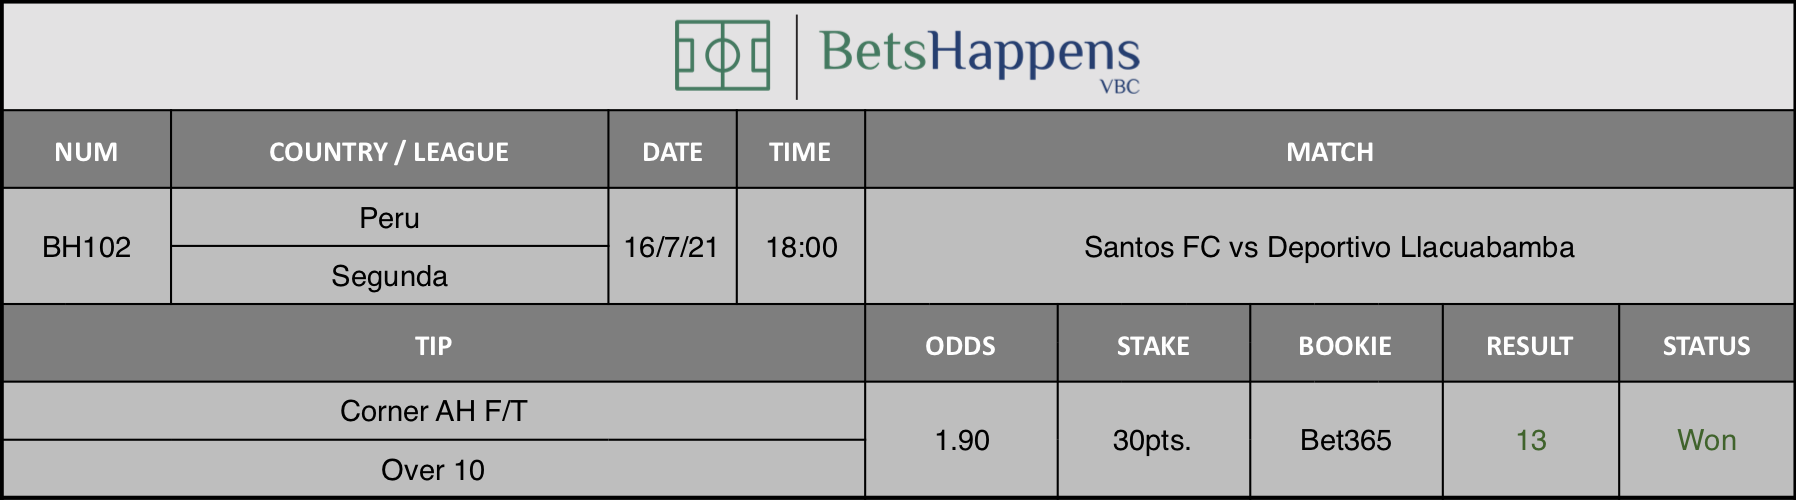 Results of our advice for the Santos FC vs Deportivo Llacuabamba match in which Corner AH F/T Over 10 is recommended.